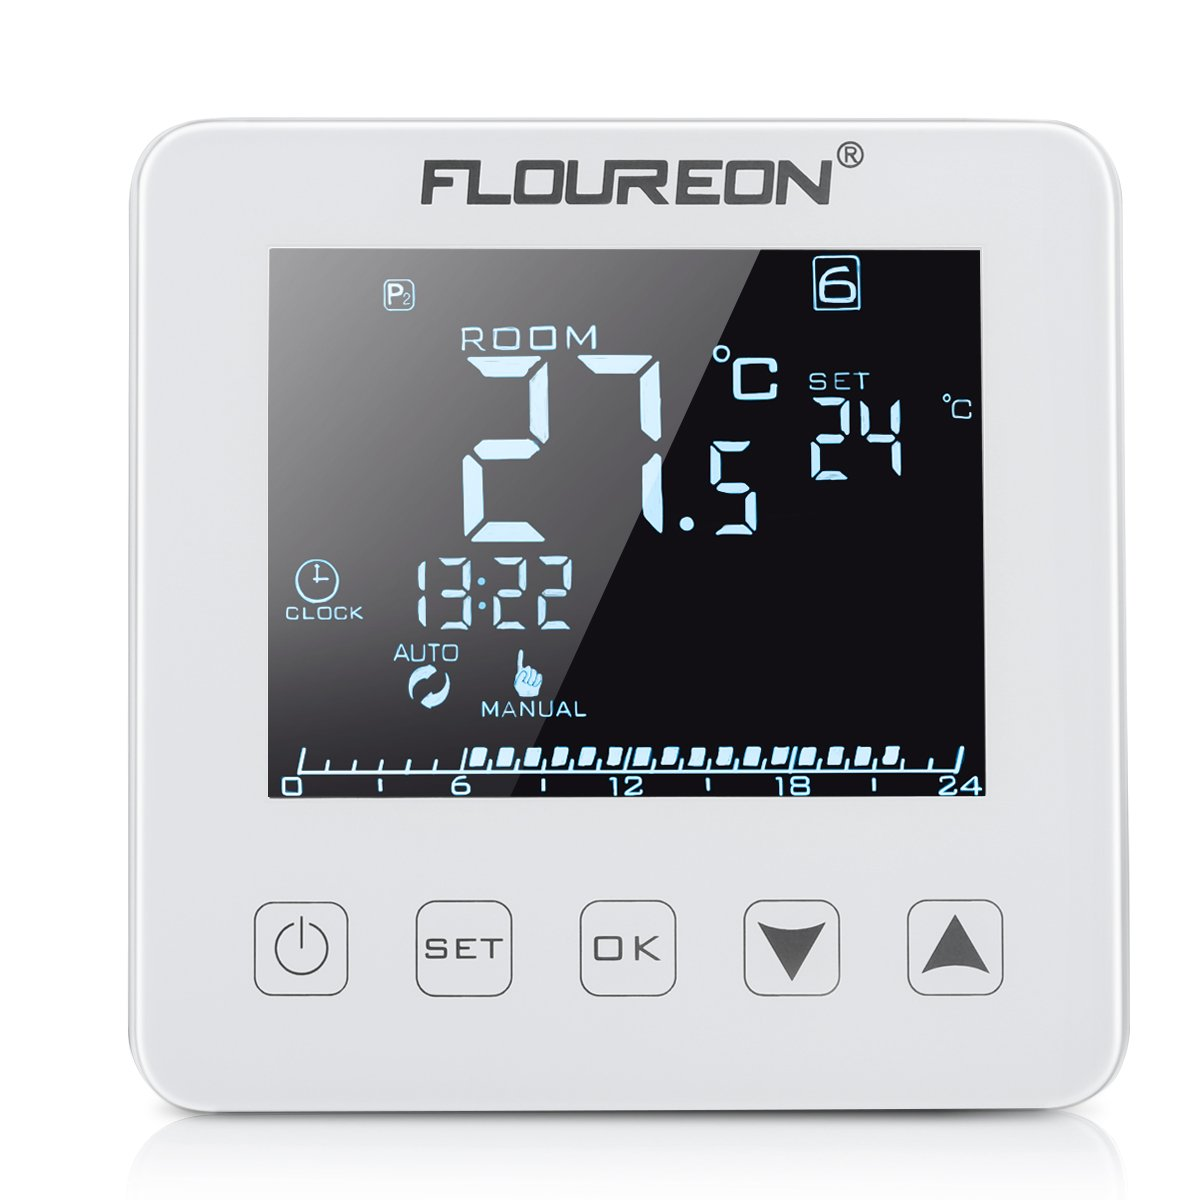 FLOUREON Heating Thermostat LCD Touchscreen Underfloor Heating Thermostats Programmable Central Heating Thermostat 5/5+1/5+2 Weekly Daily Underfloor Temperature Controller (Black)